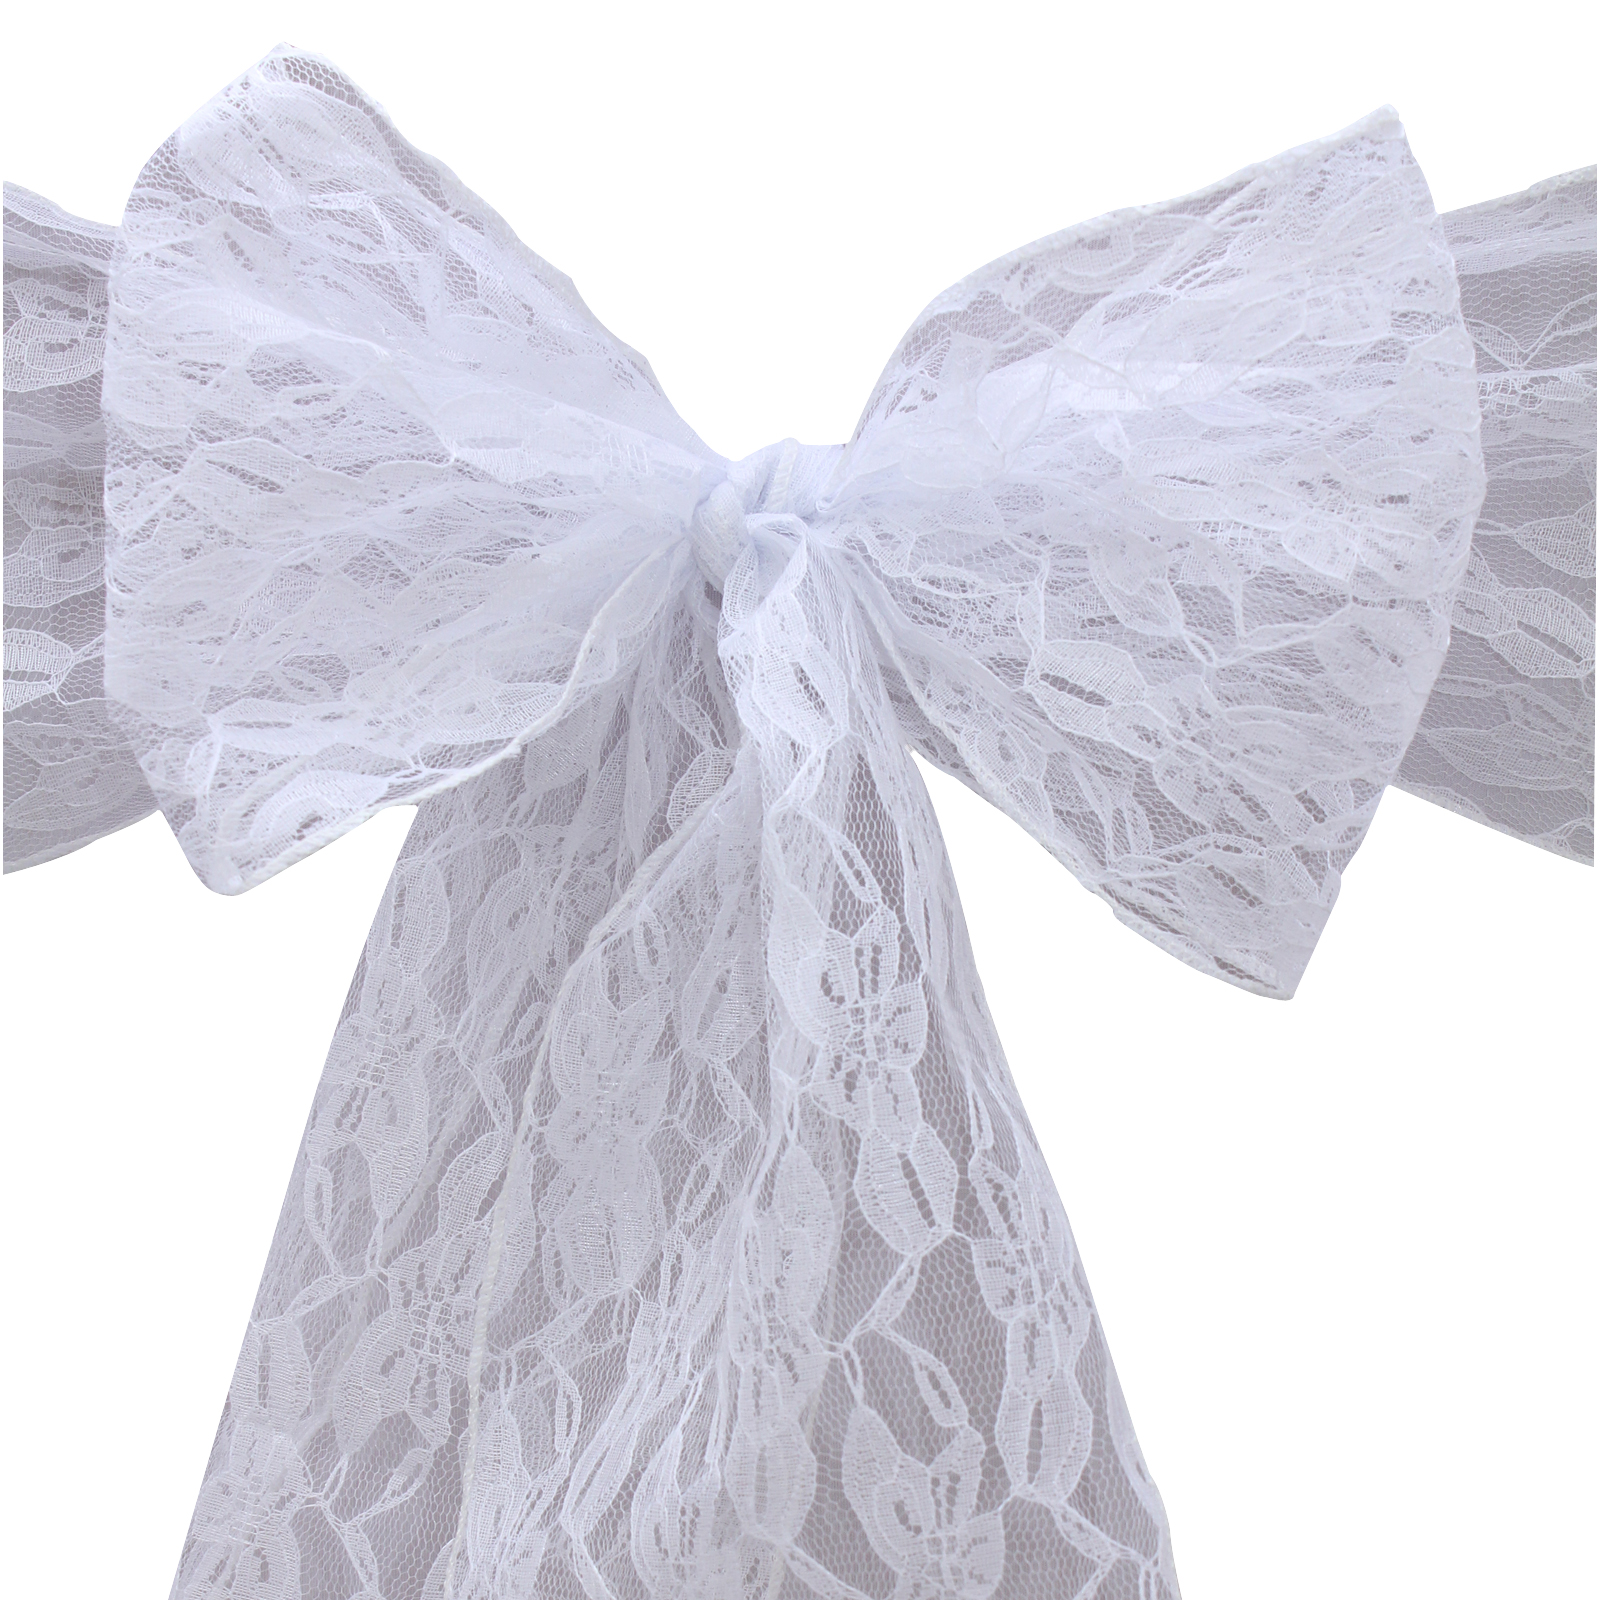 Wedding Chair Covers Alibaba Black Lycra For Sale Fr Stock 100pcs 18x275cm Lace Sashes Bands Bow Ties